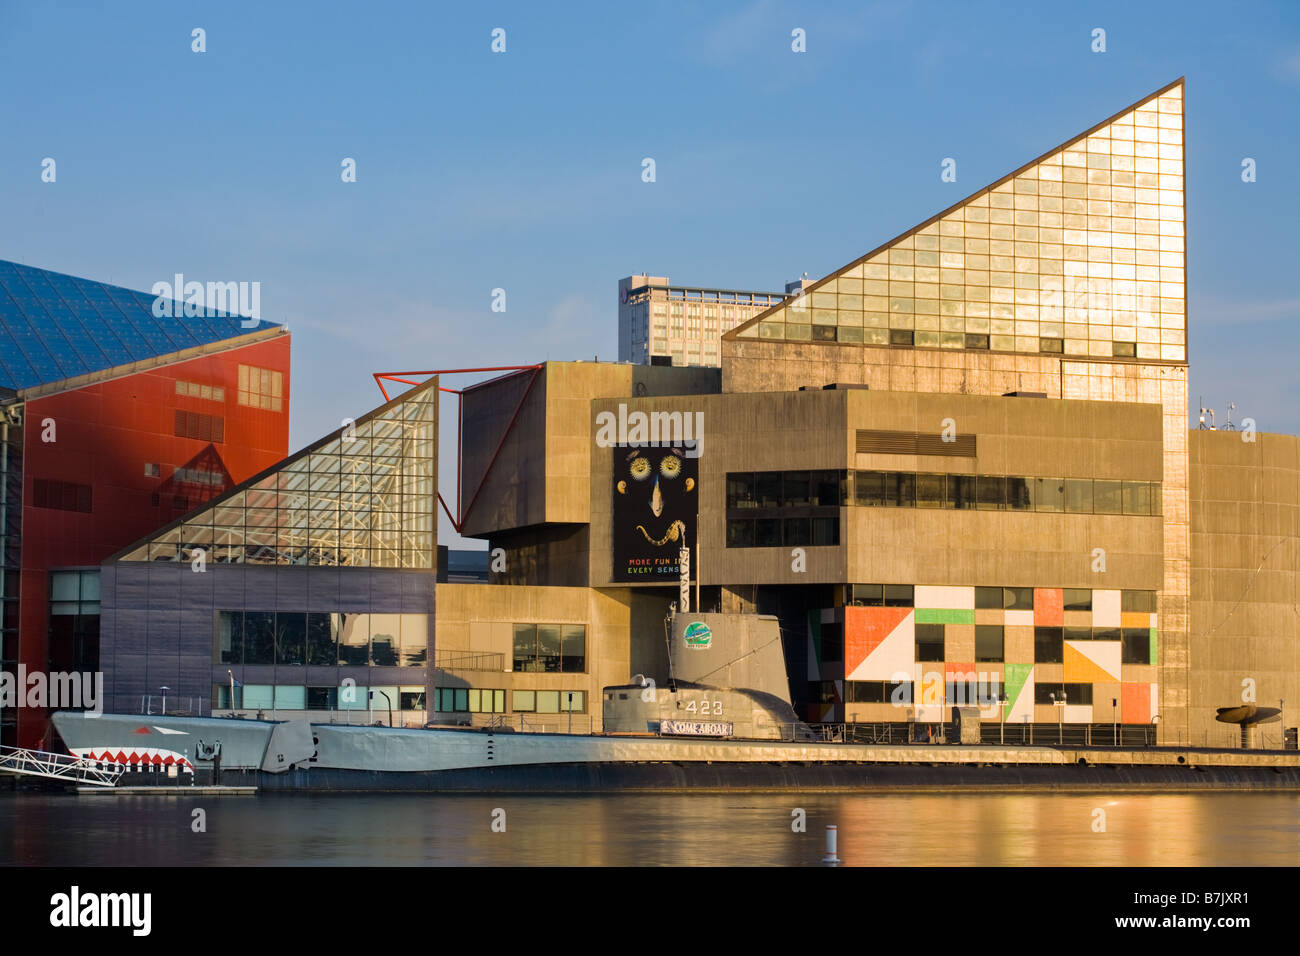 National Aquarium and USS Torsk at Inner Harbor of Baltimore Maryland - Stock Image